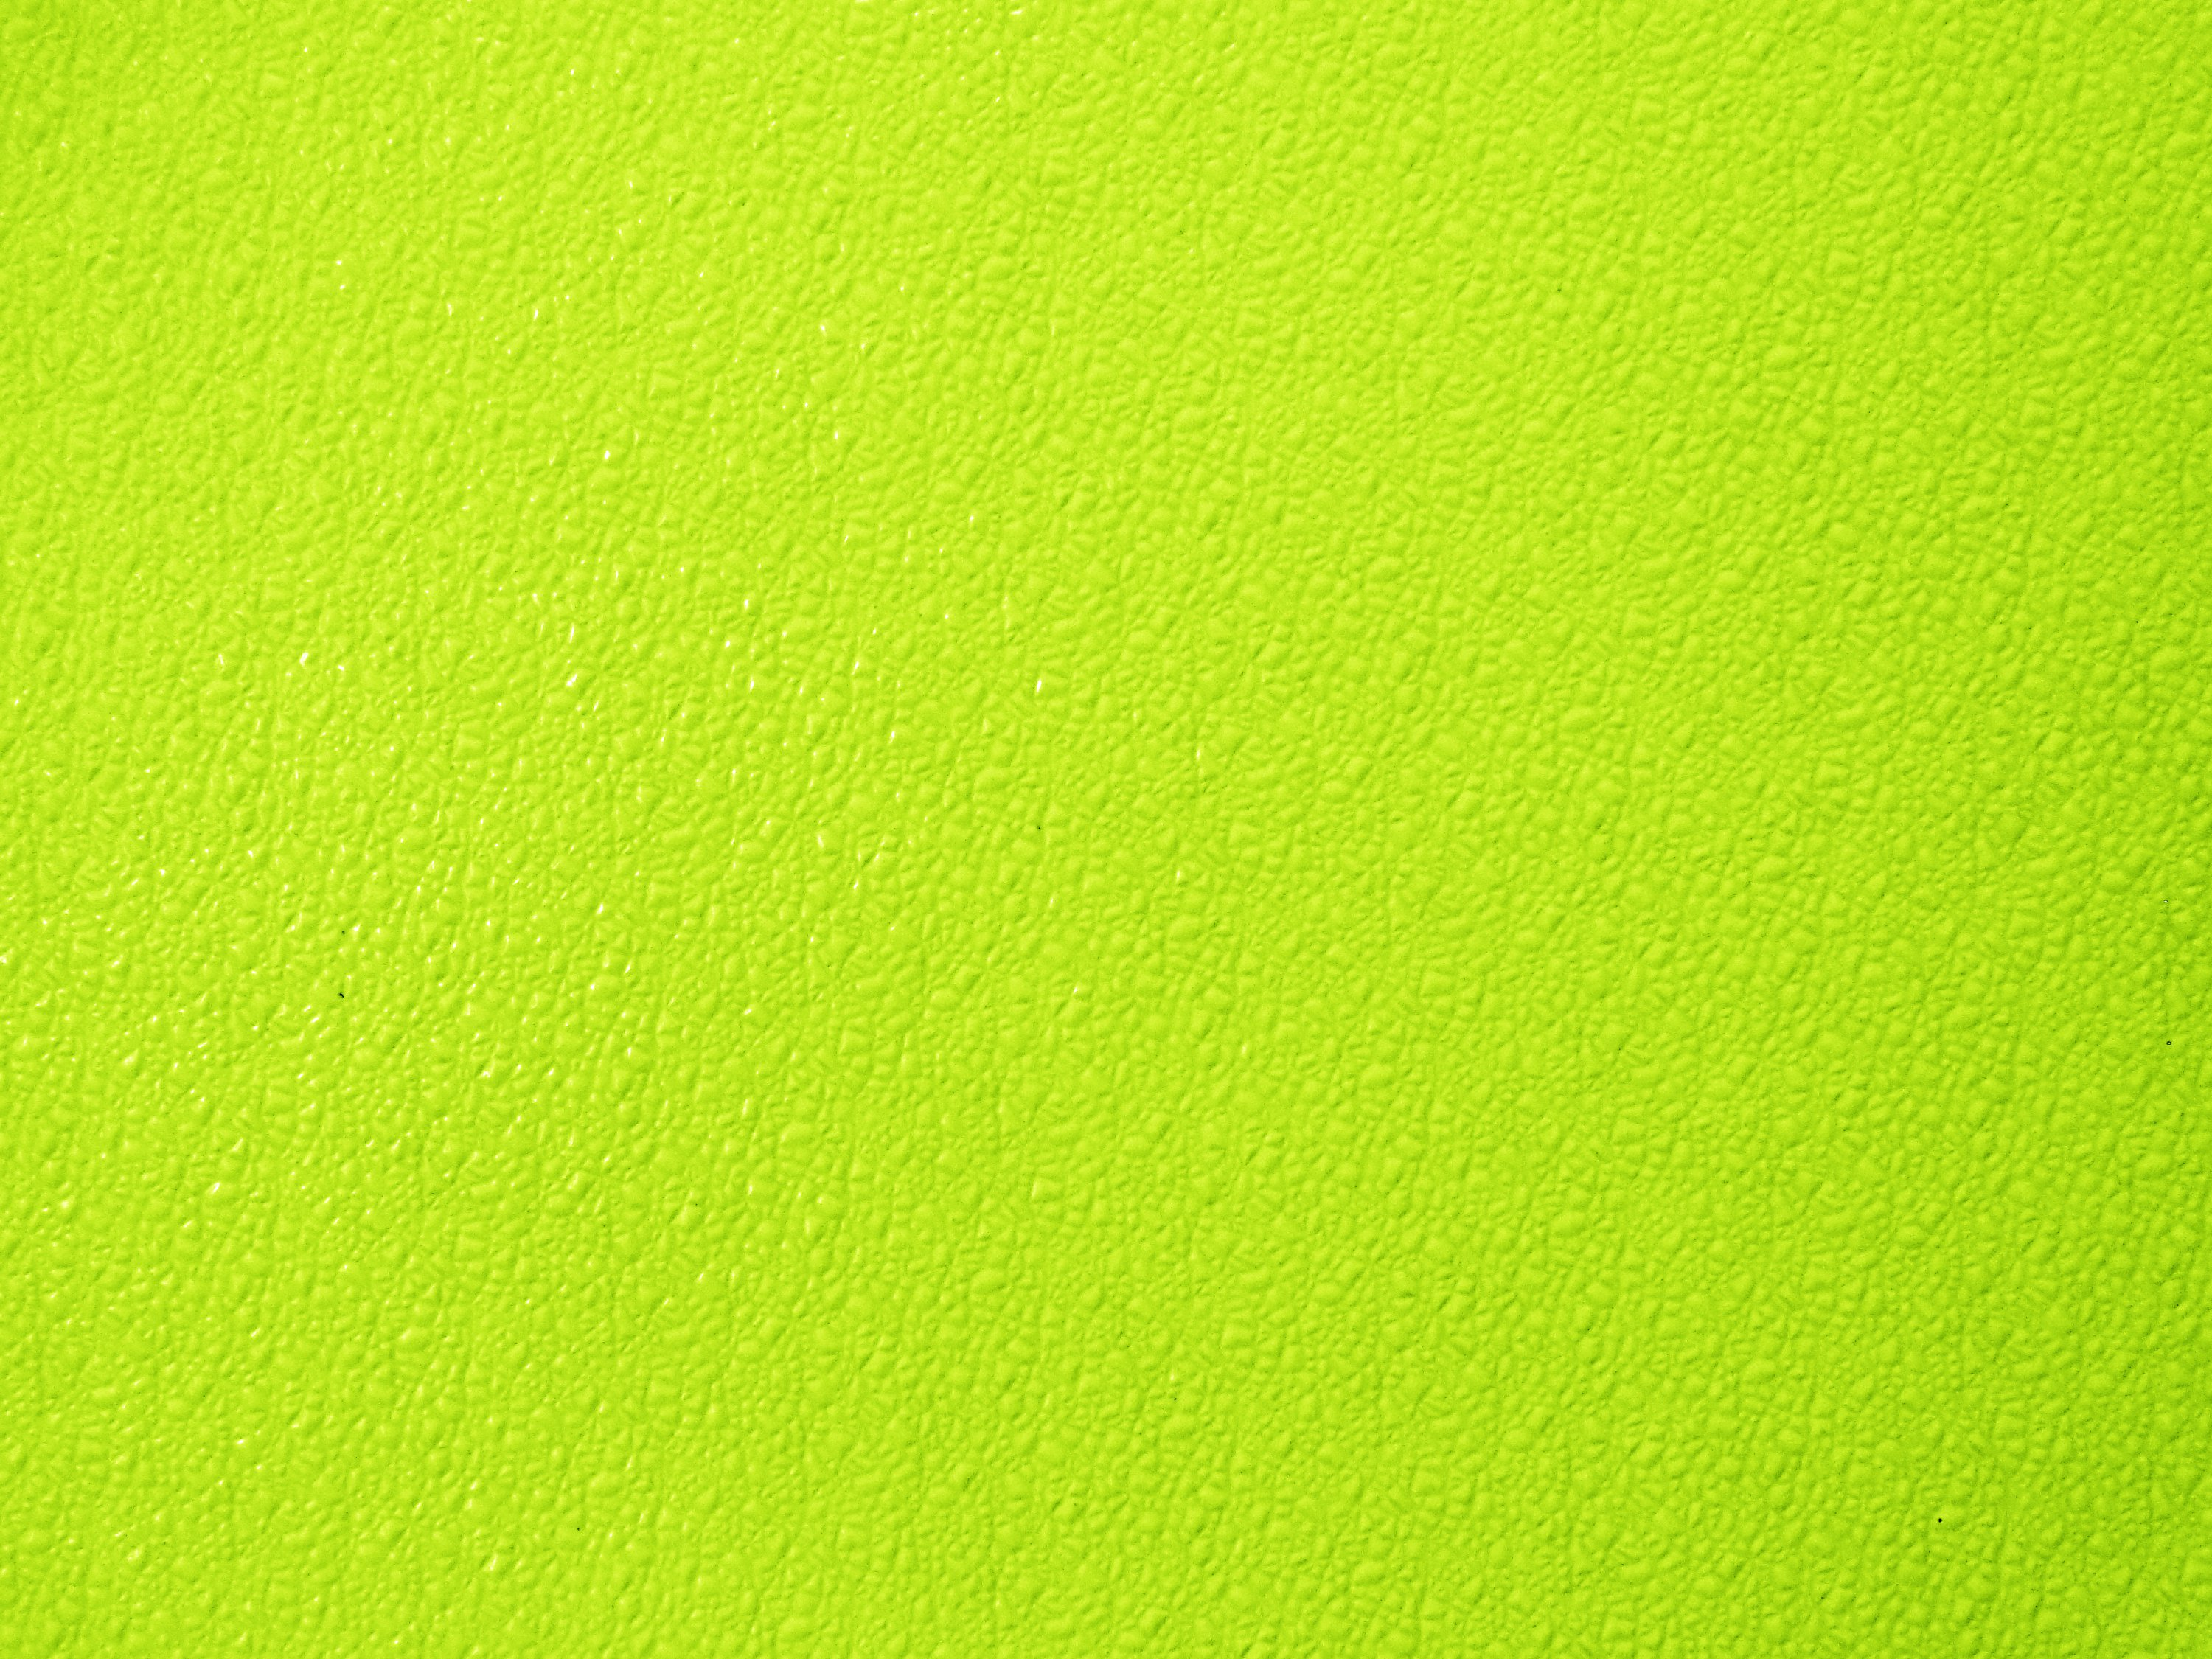 Bumpy Chartreuse Plastic Texture Picture Free Photograph